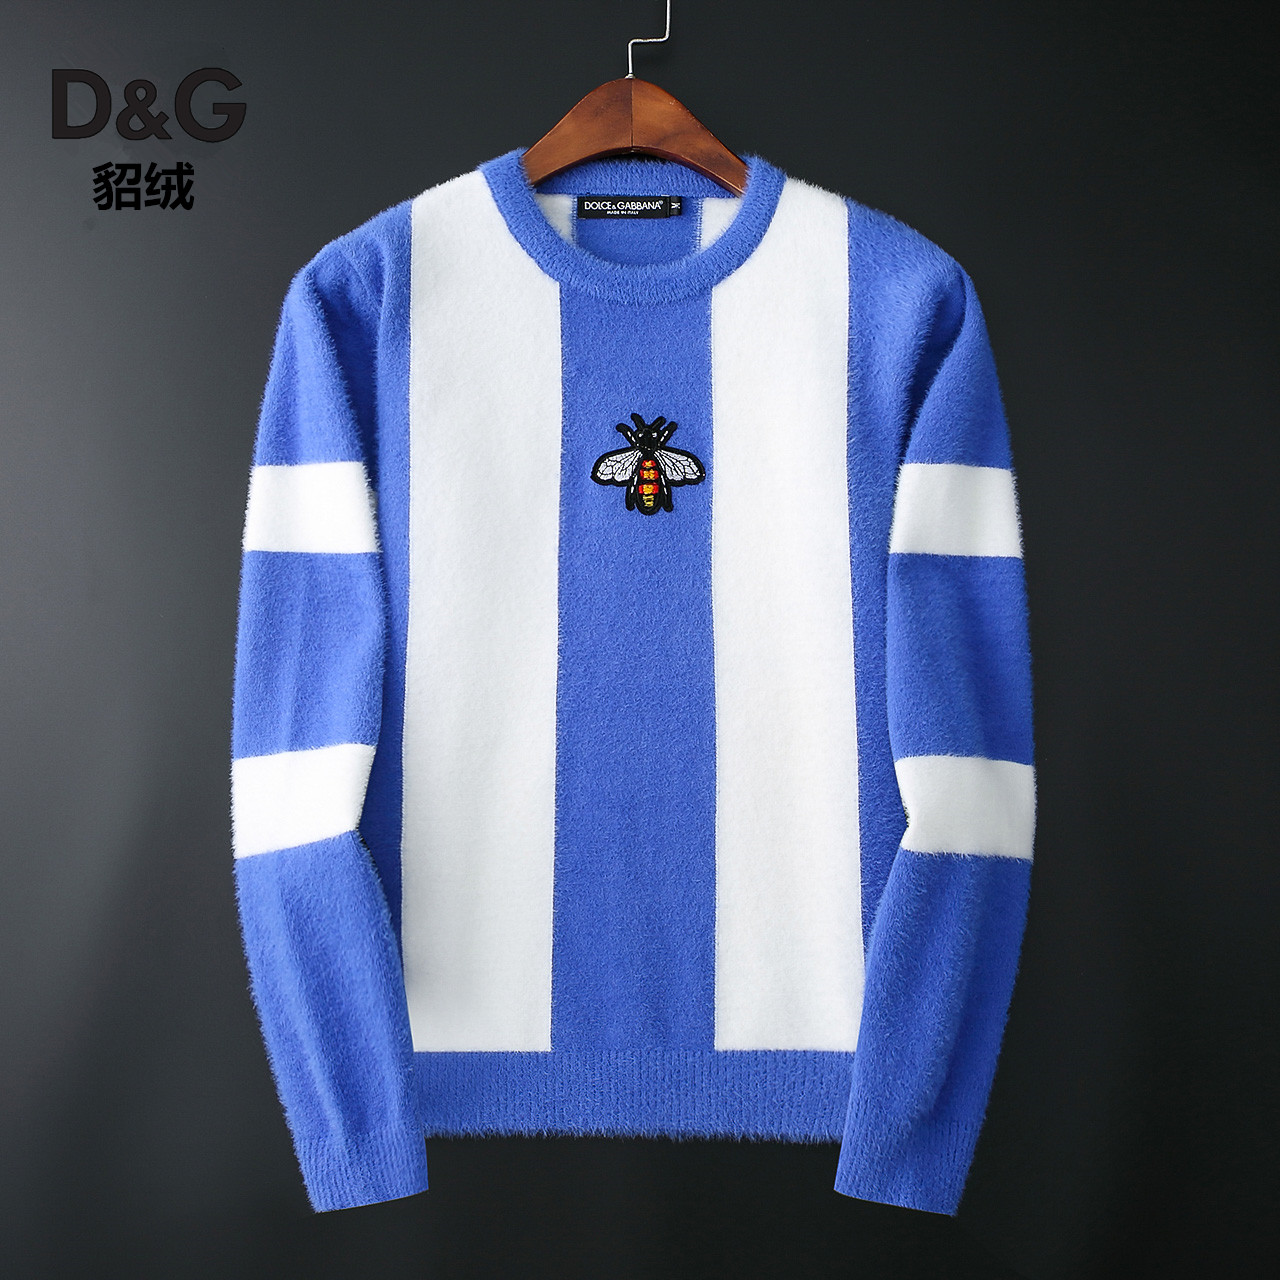 Replica D&G Sweaters For men